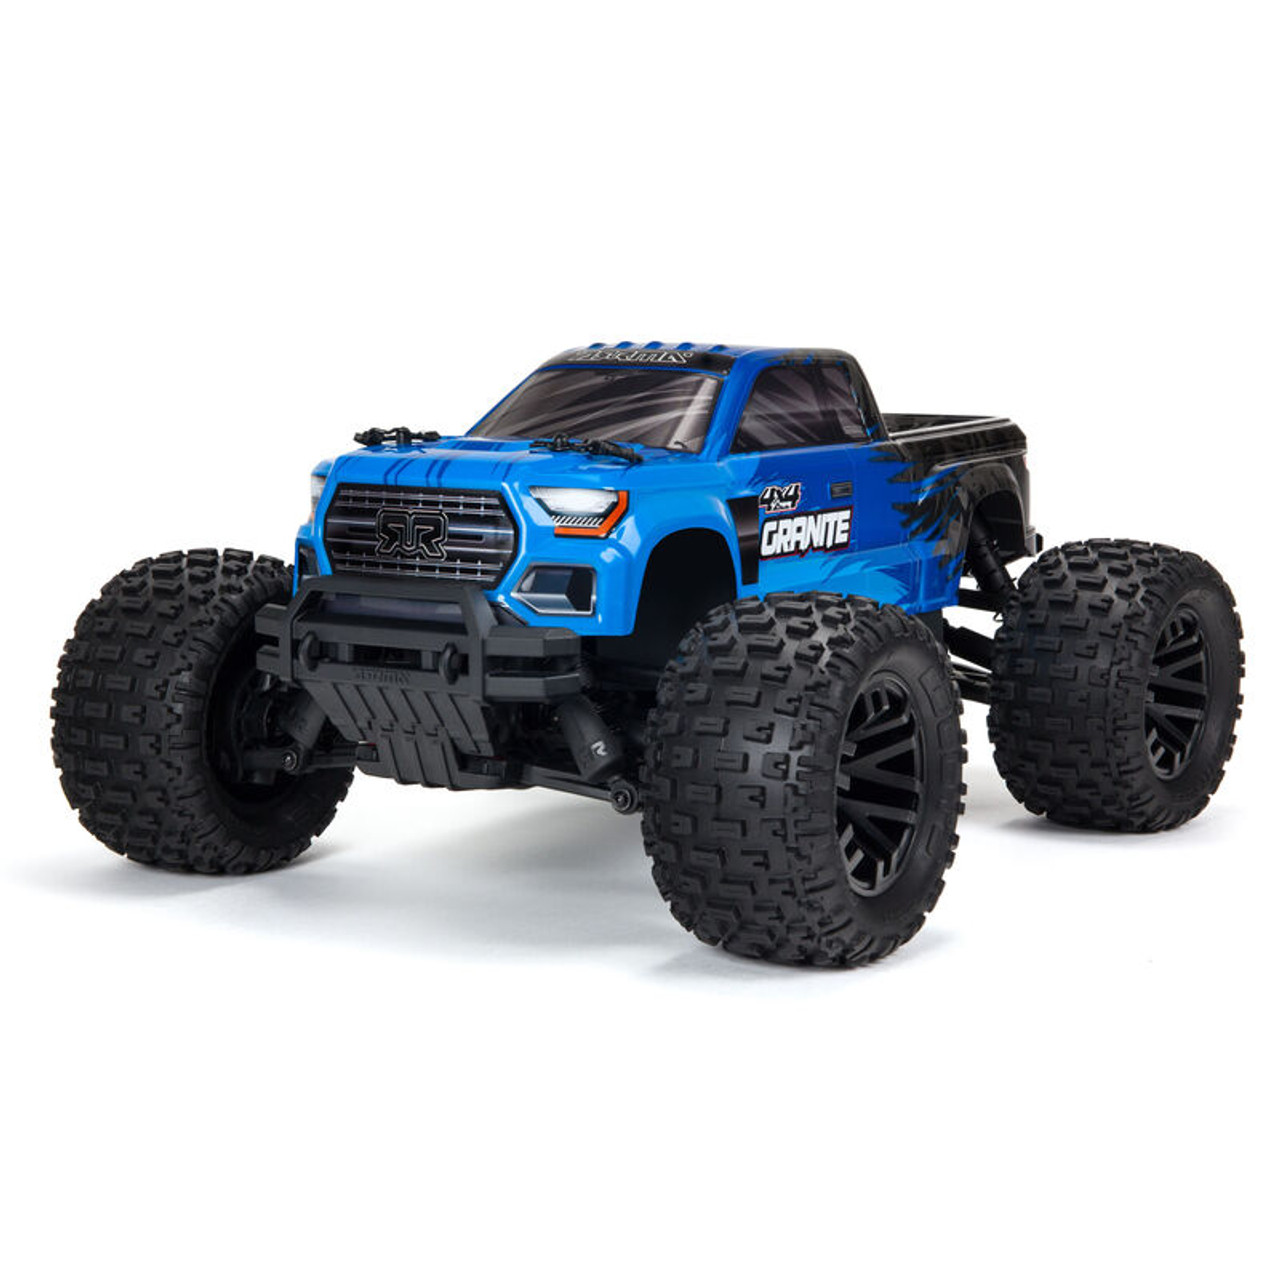 Arrma Granite 4x4 V3 550 Mega RTR Monster Truck (Blue) w/ Spektrum SLT3 2.4GHz Radio